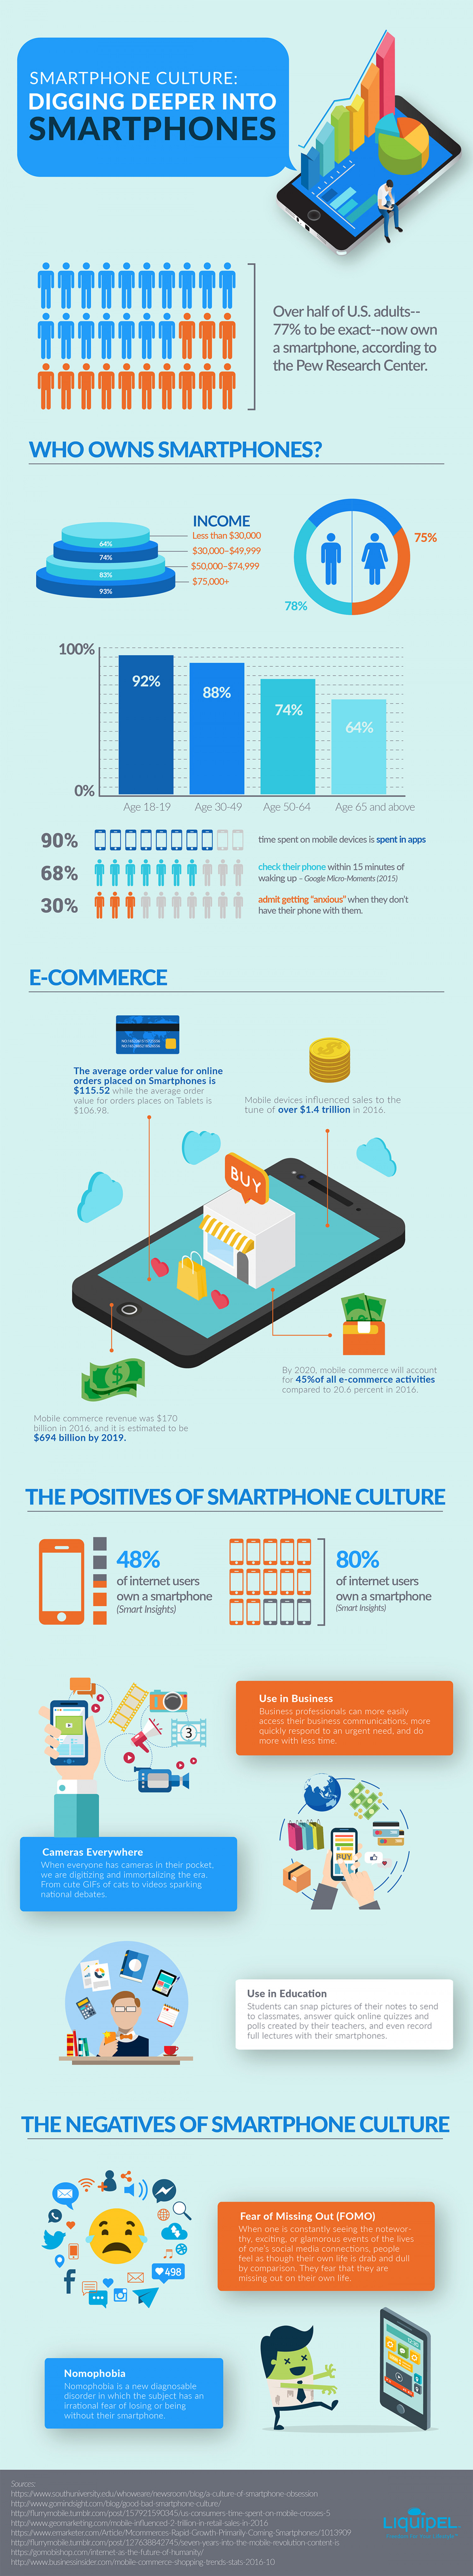 Mobile phone cultures and stats